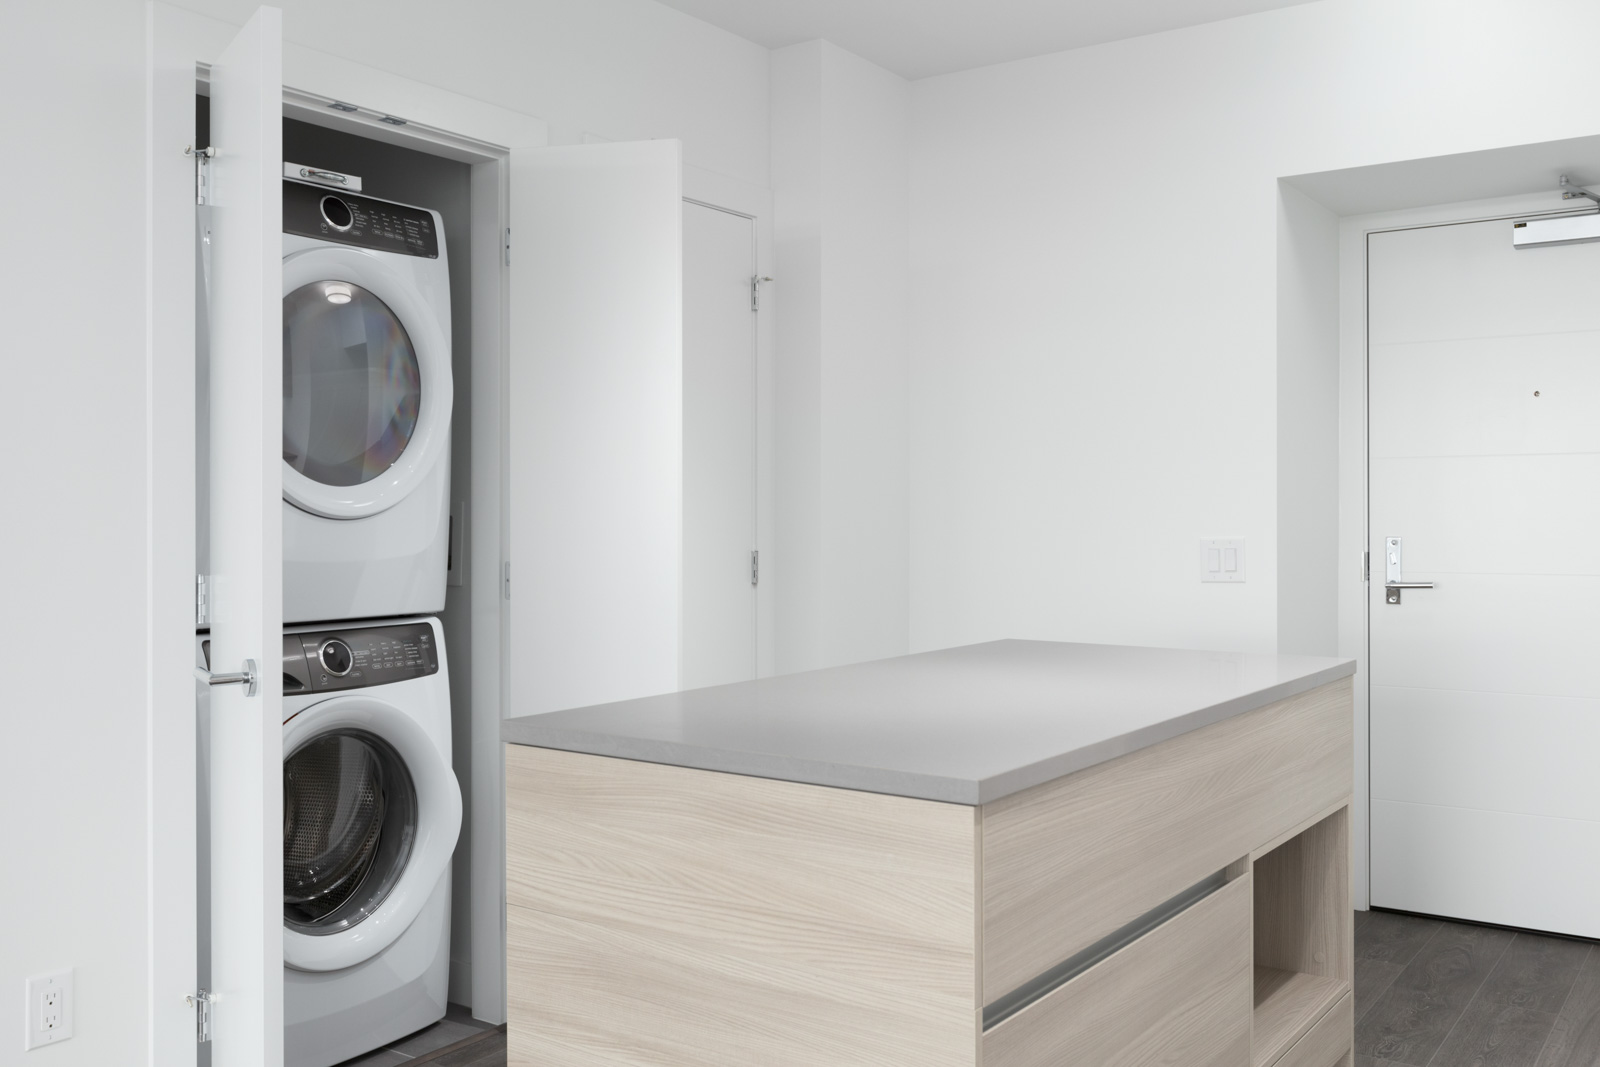 kitchen island counter in condo suite with open laundry closet on left showing stacked white washer and dryer